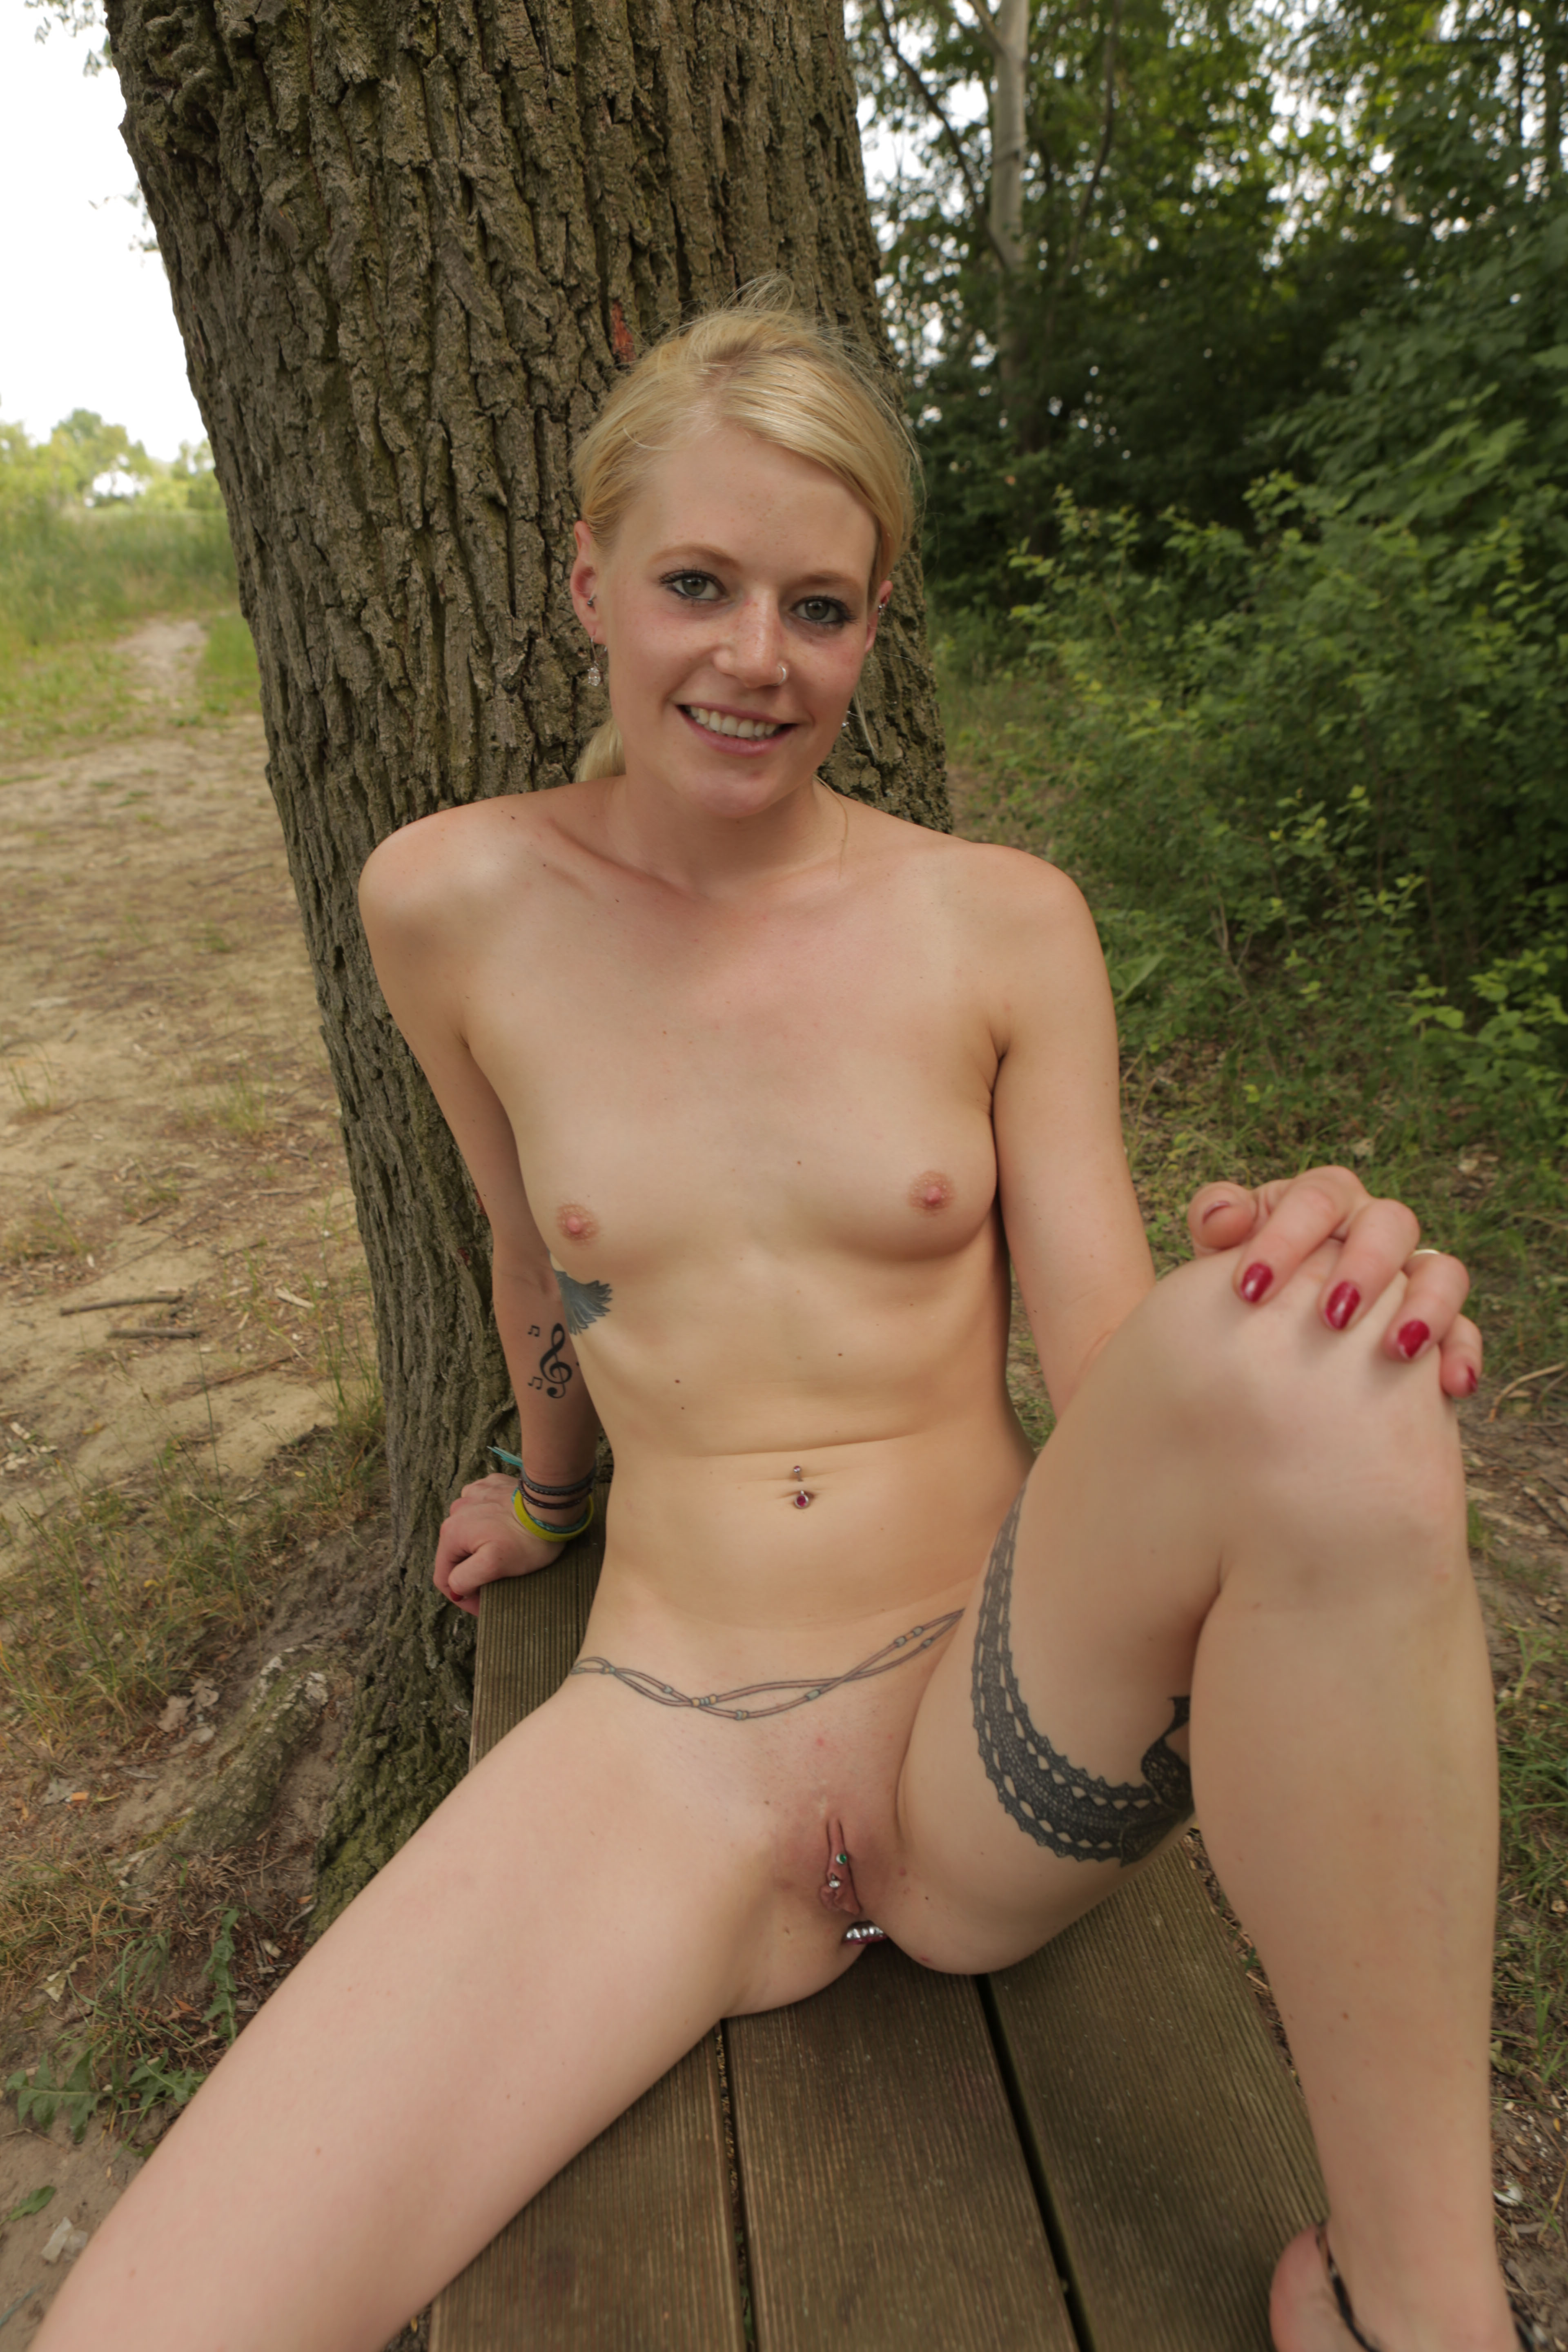 sweet redhead gir bonnie came a long way from l from australia flashing her unshaved triangle #11